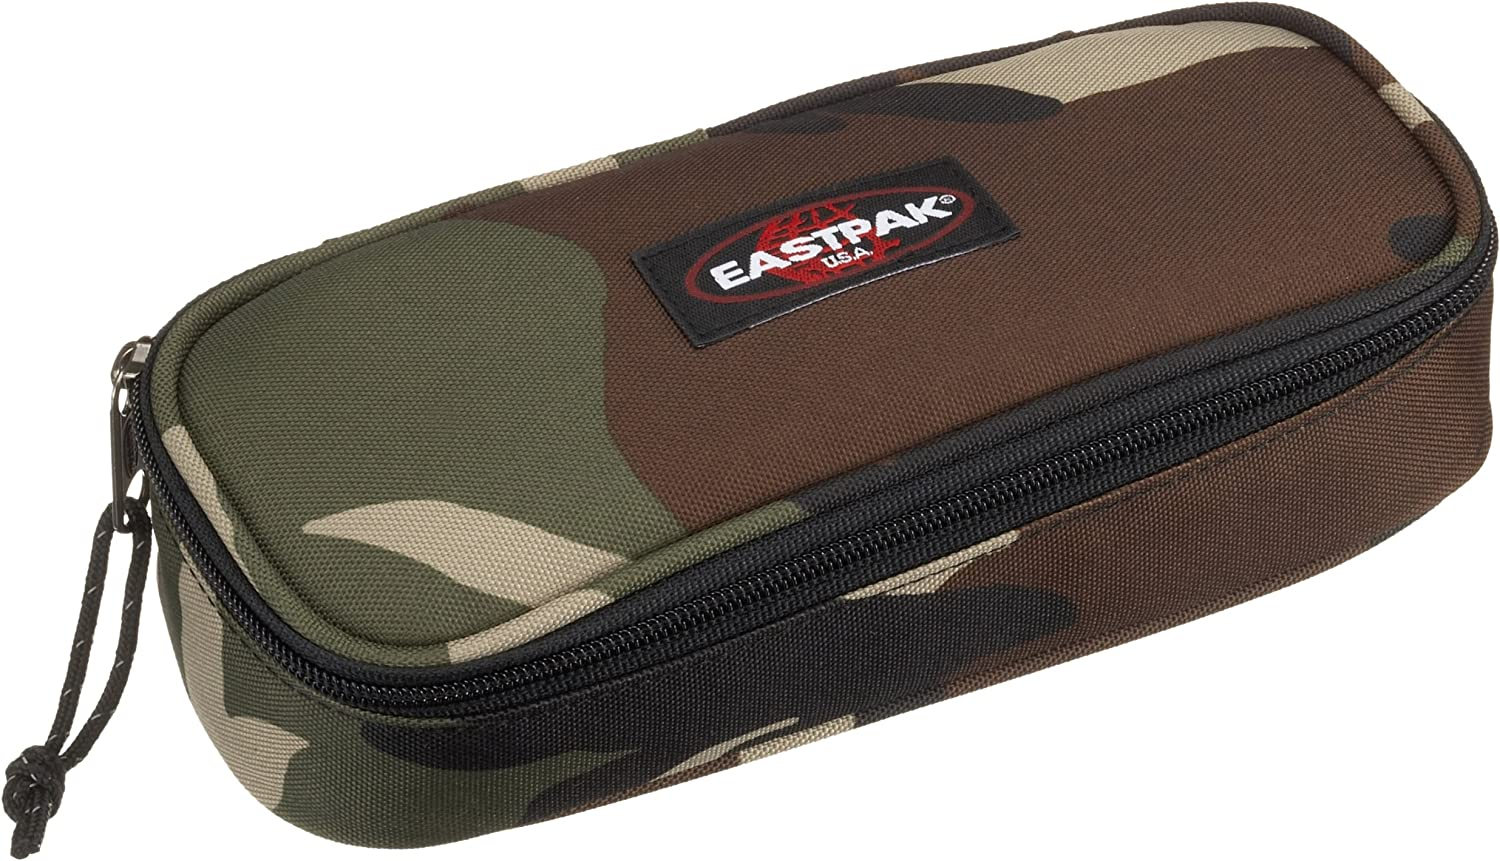 EASTPAK Pencil Case Oval Roseport: Amazon.es: Hogar